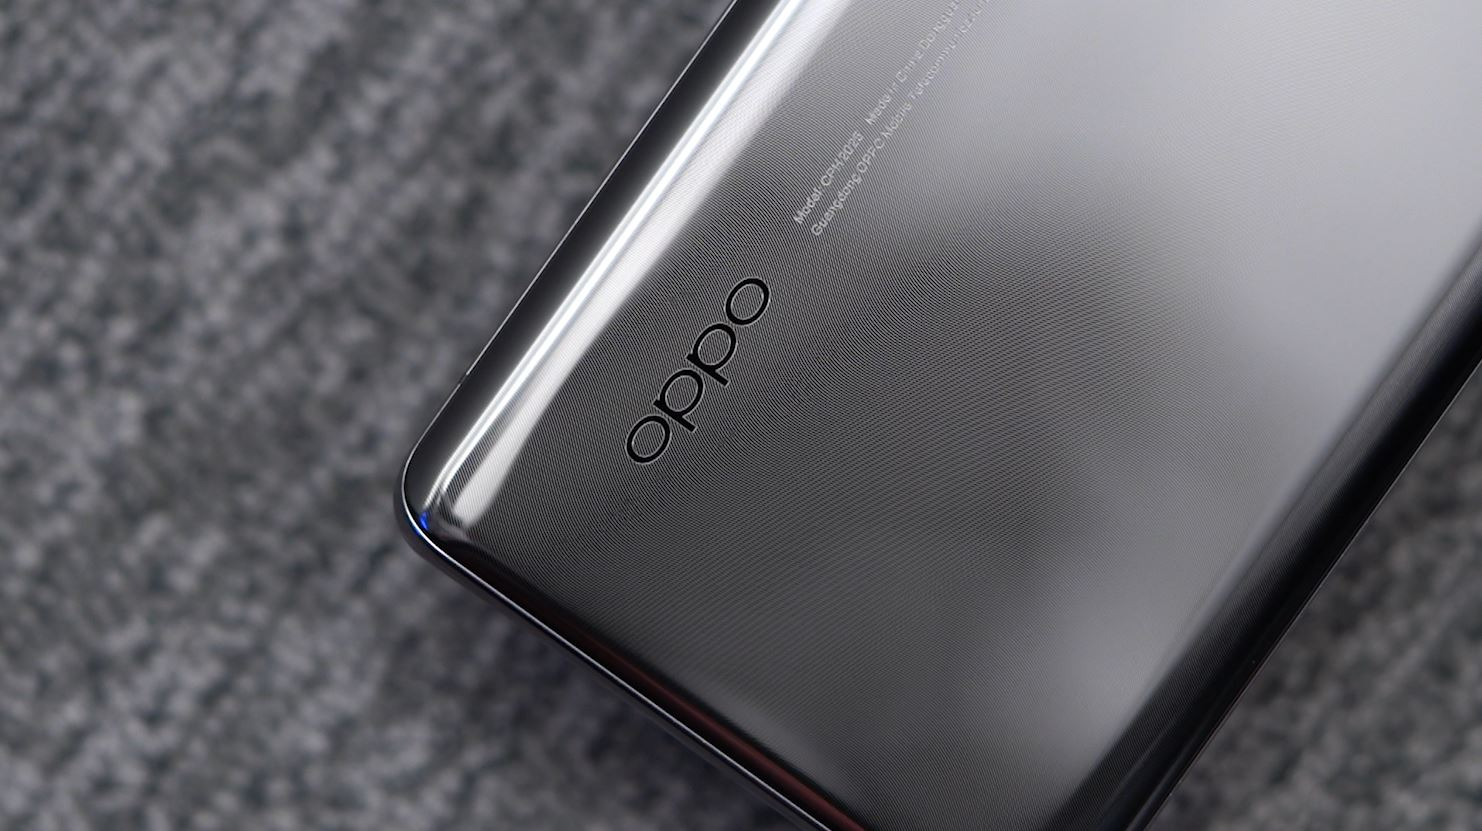 Report: Oppo ranks #1 for customer satisfaction in after sales service